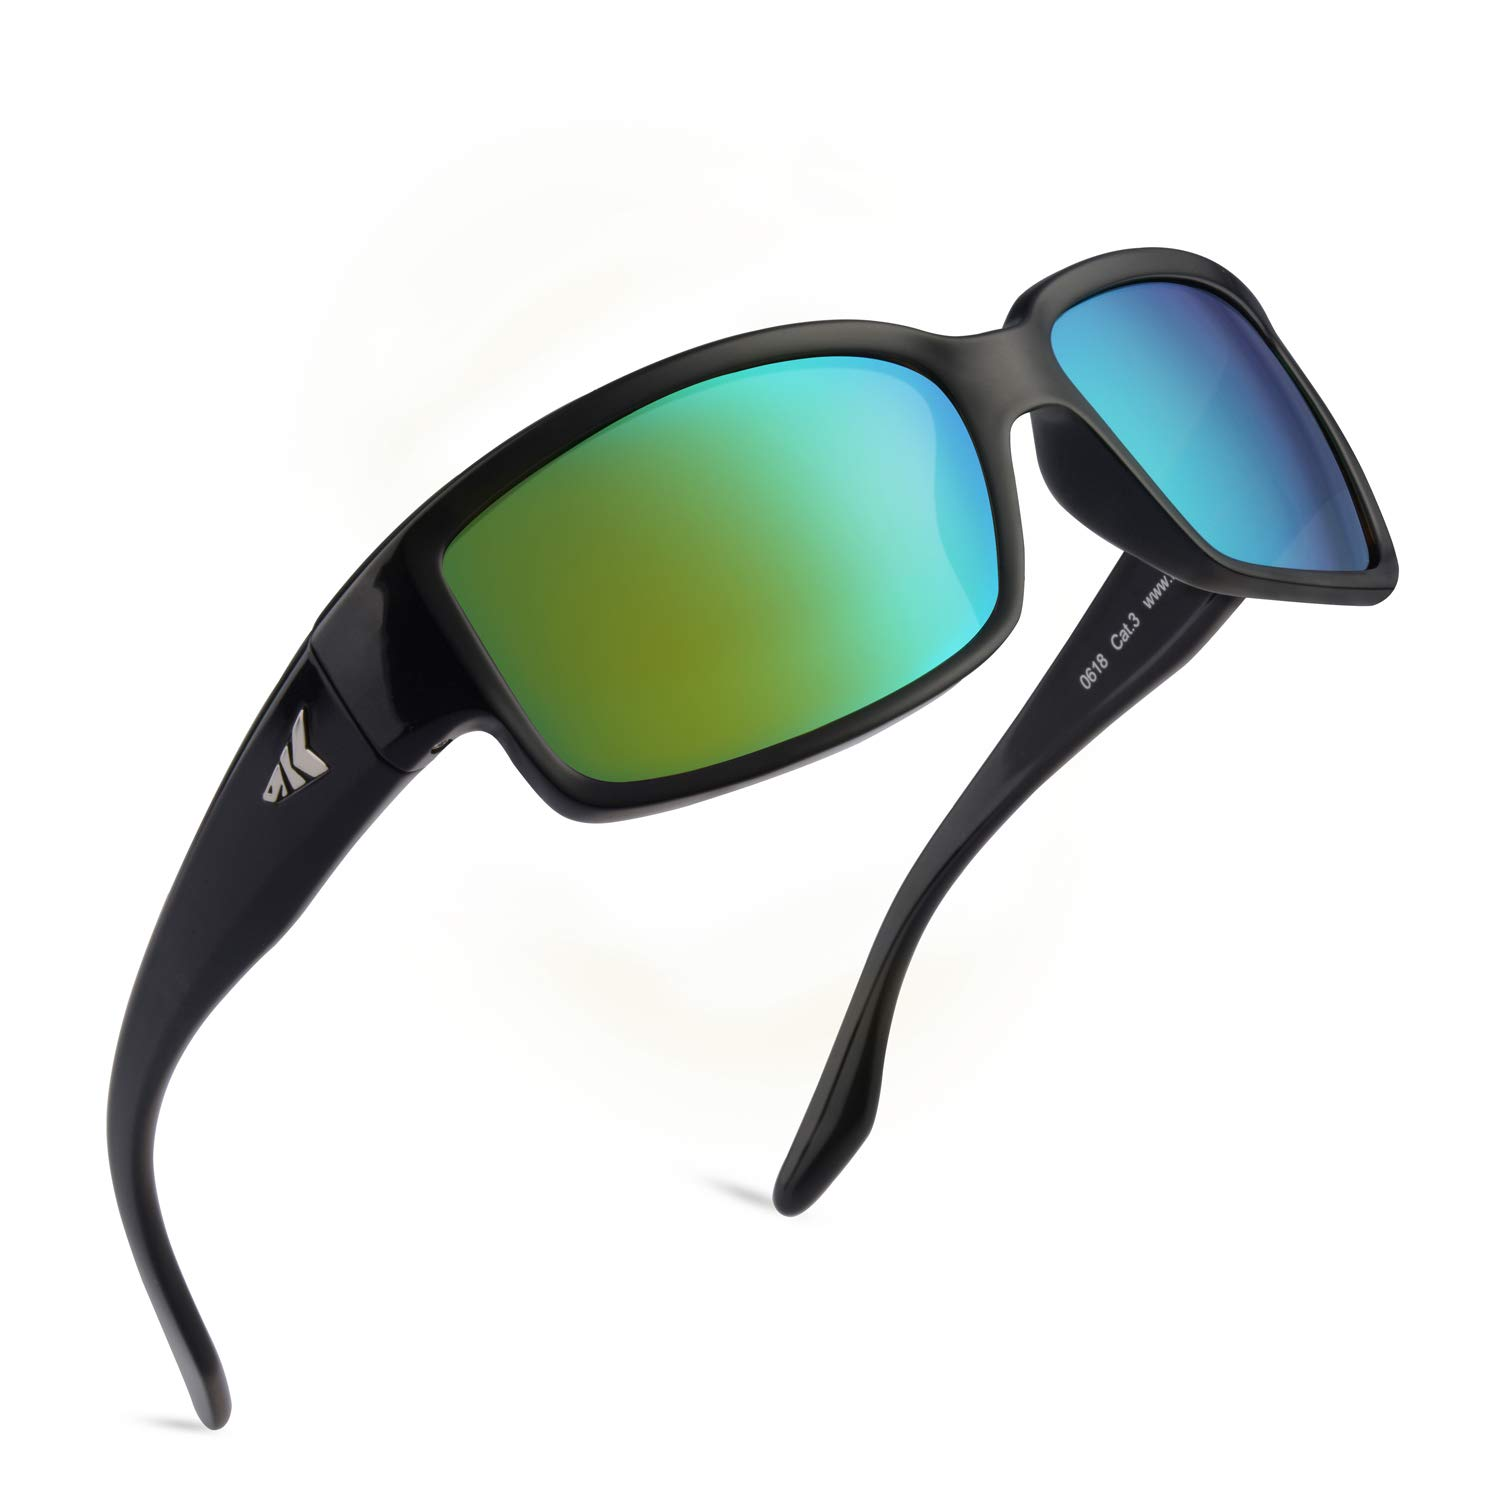 KastKing Skidaway Polarized Sport Sunglasses | Best Durability